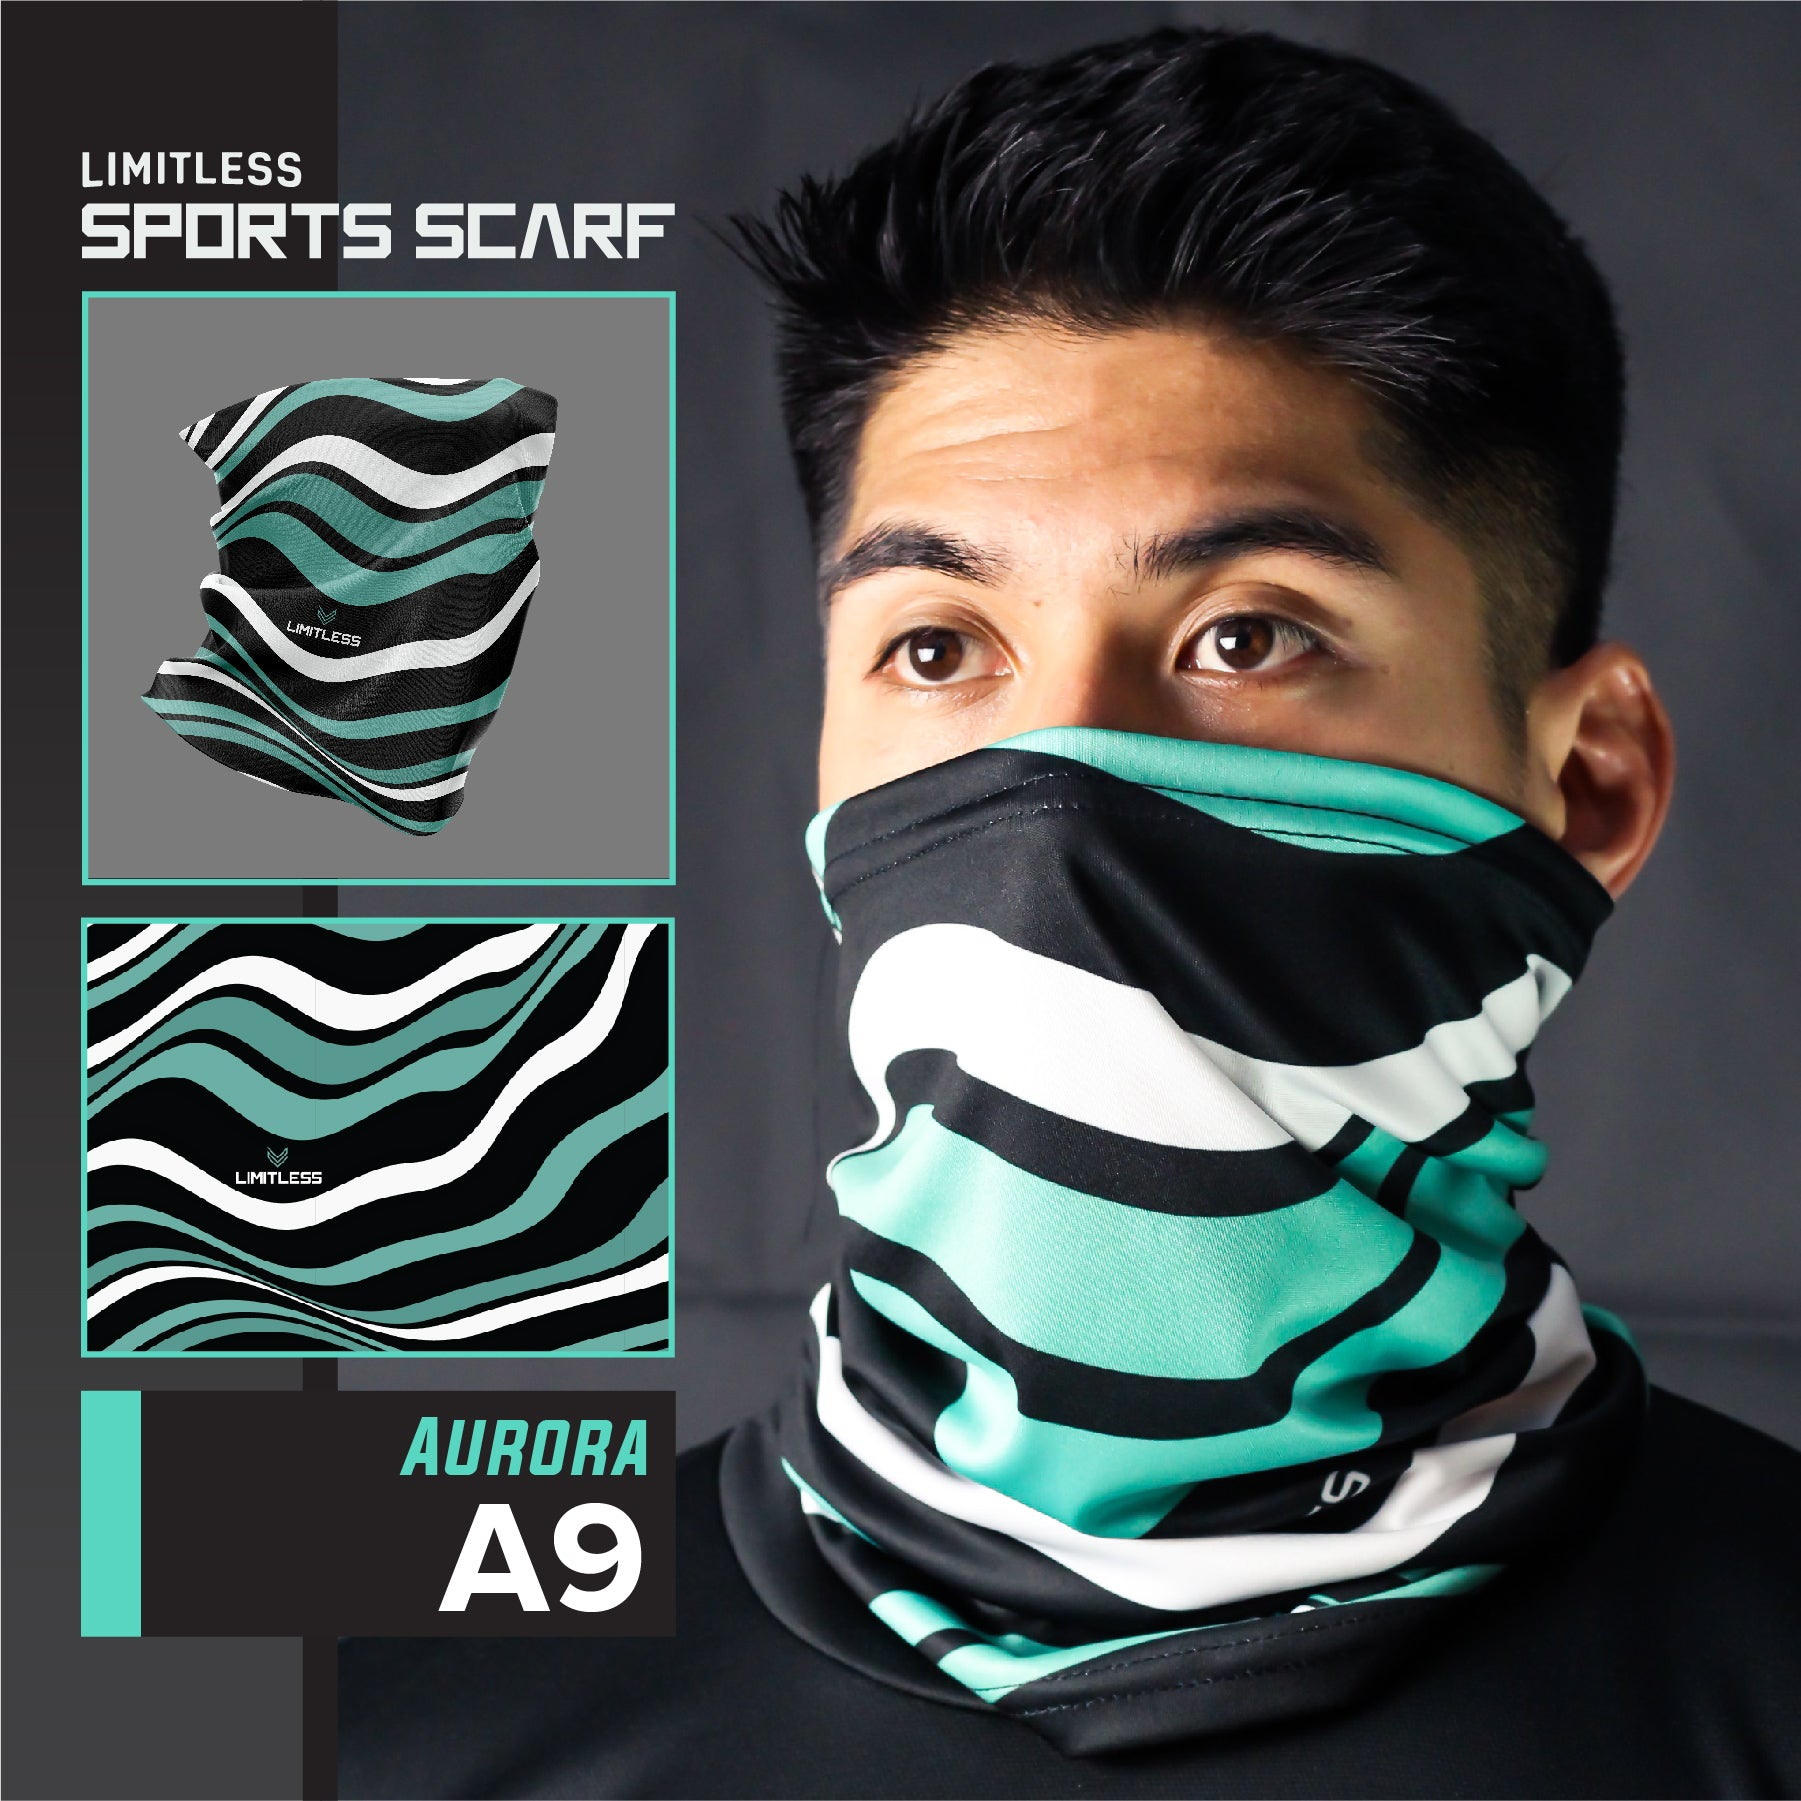 Limitless Outdoor Sports Scarf - Set A